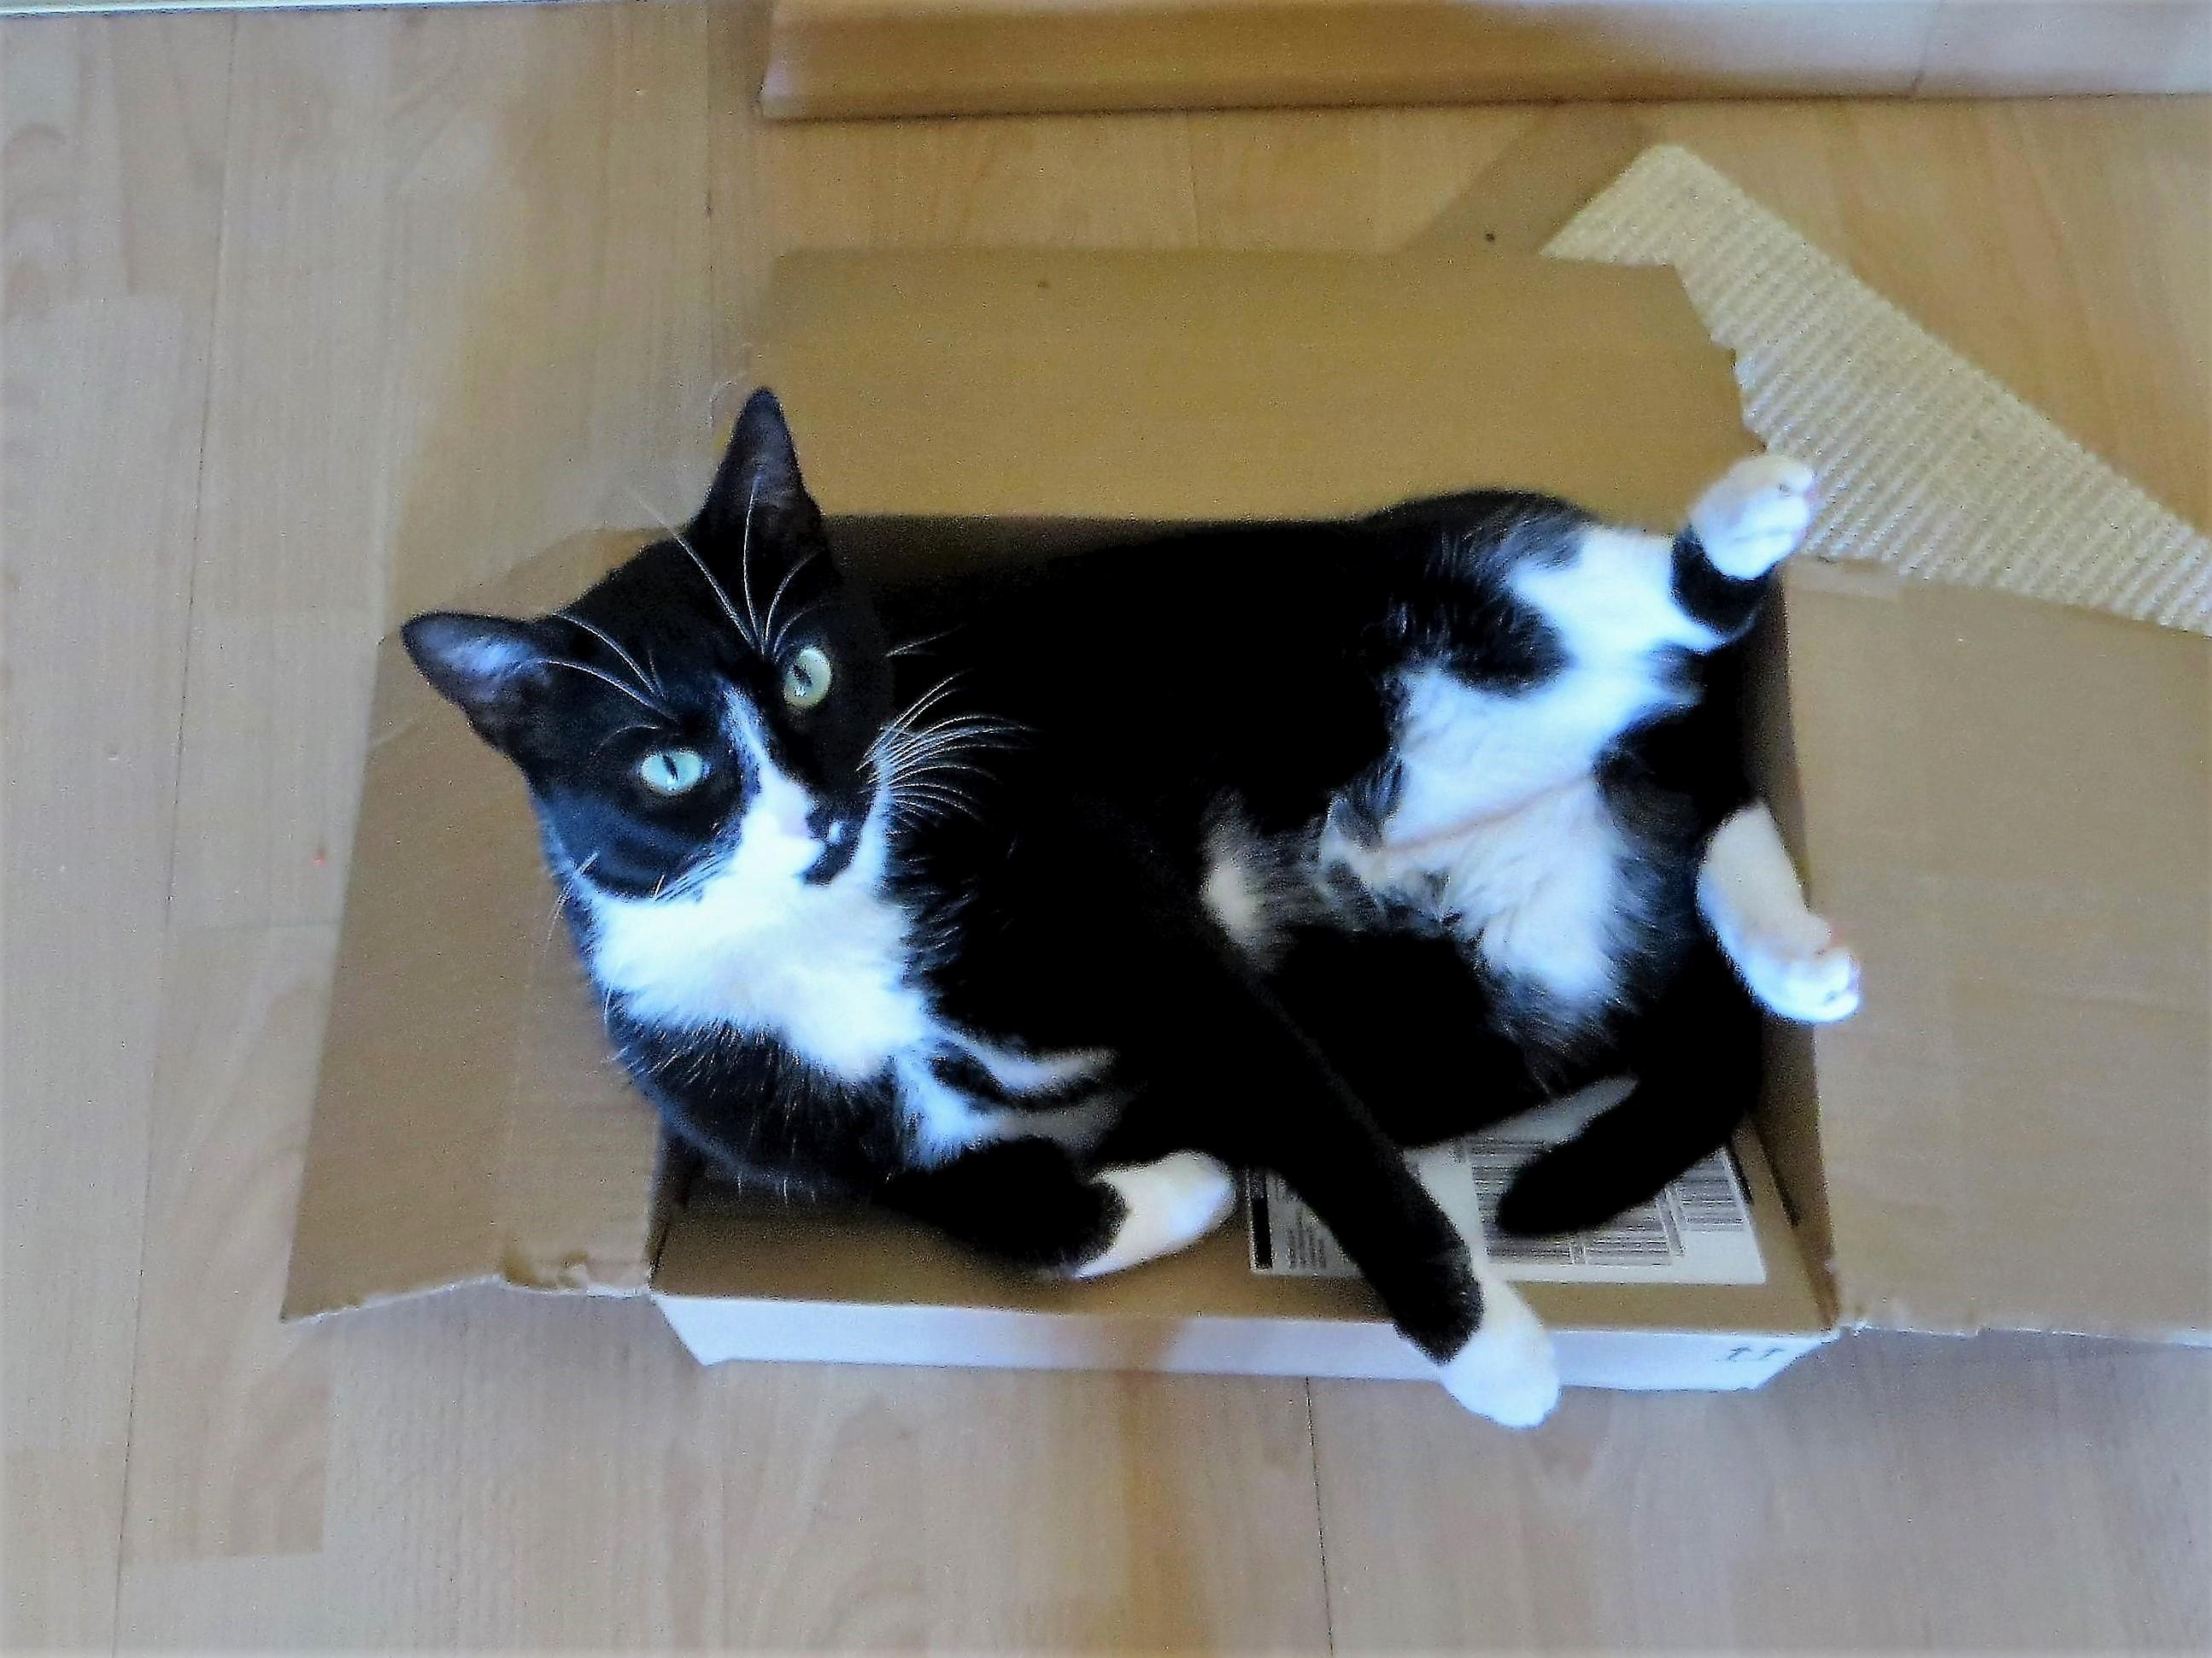 I only order online to make my cat happy